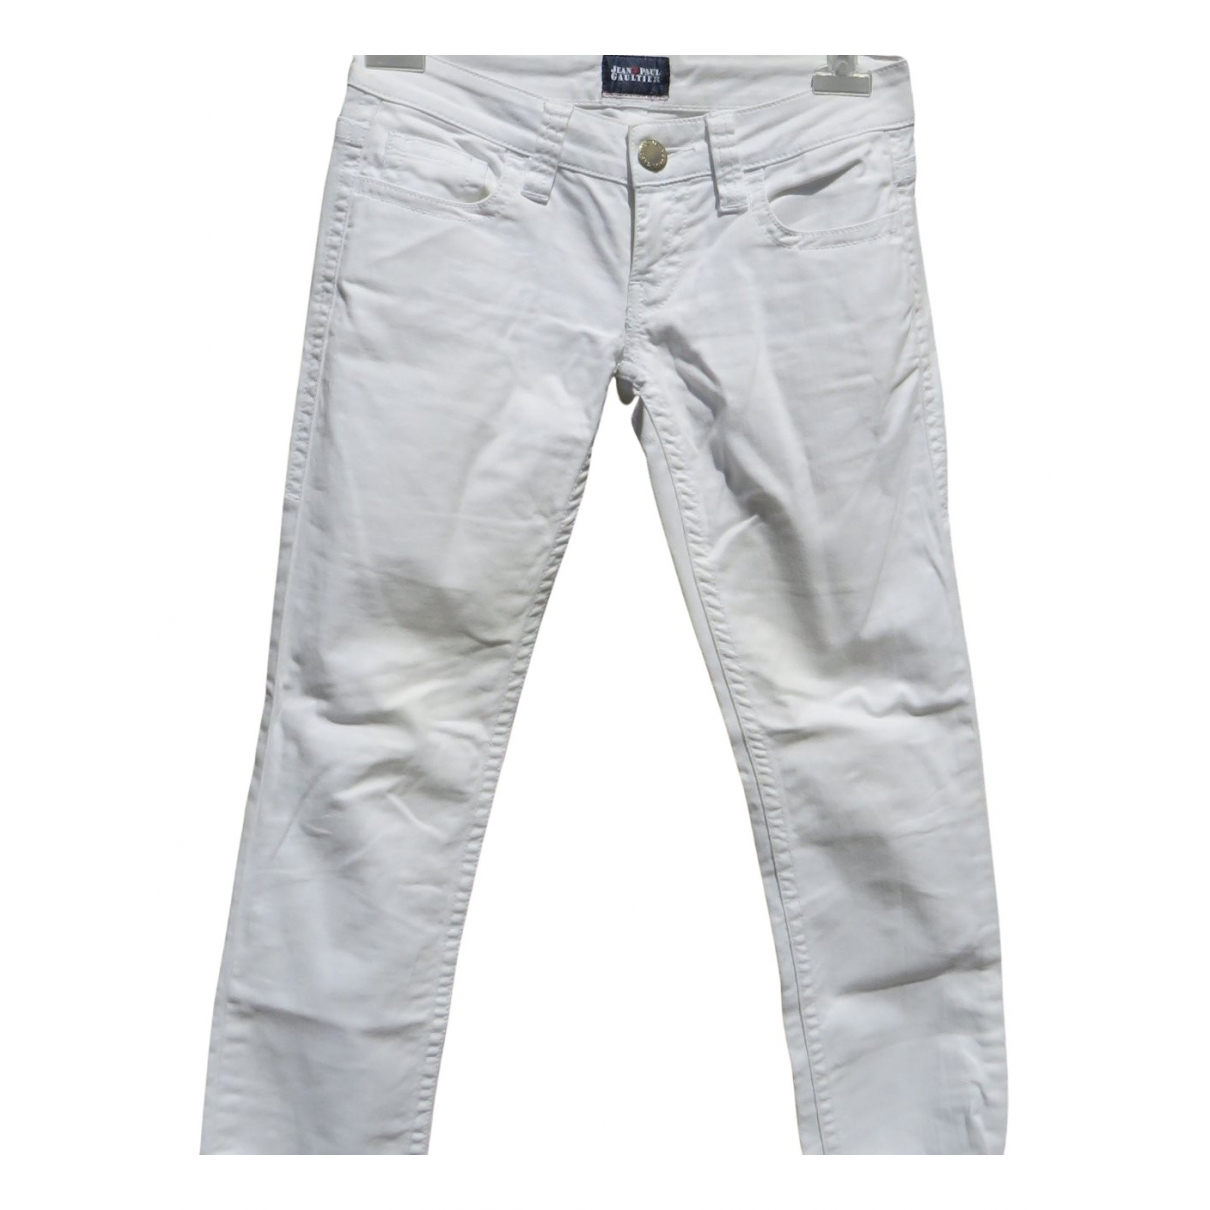 Jean Paul Gaultier N White Cotton Jeans for Women 25 US